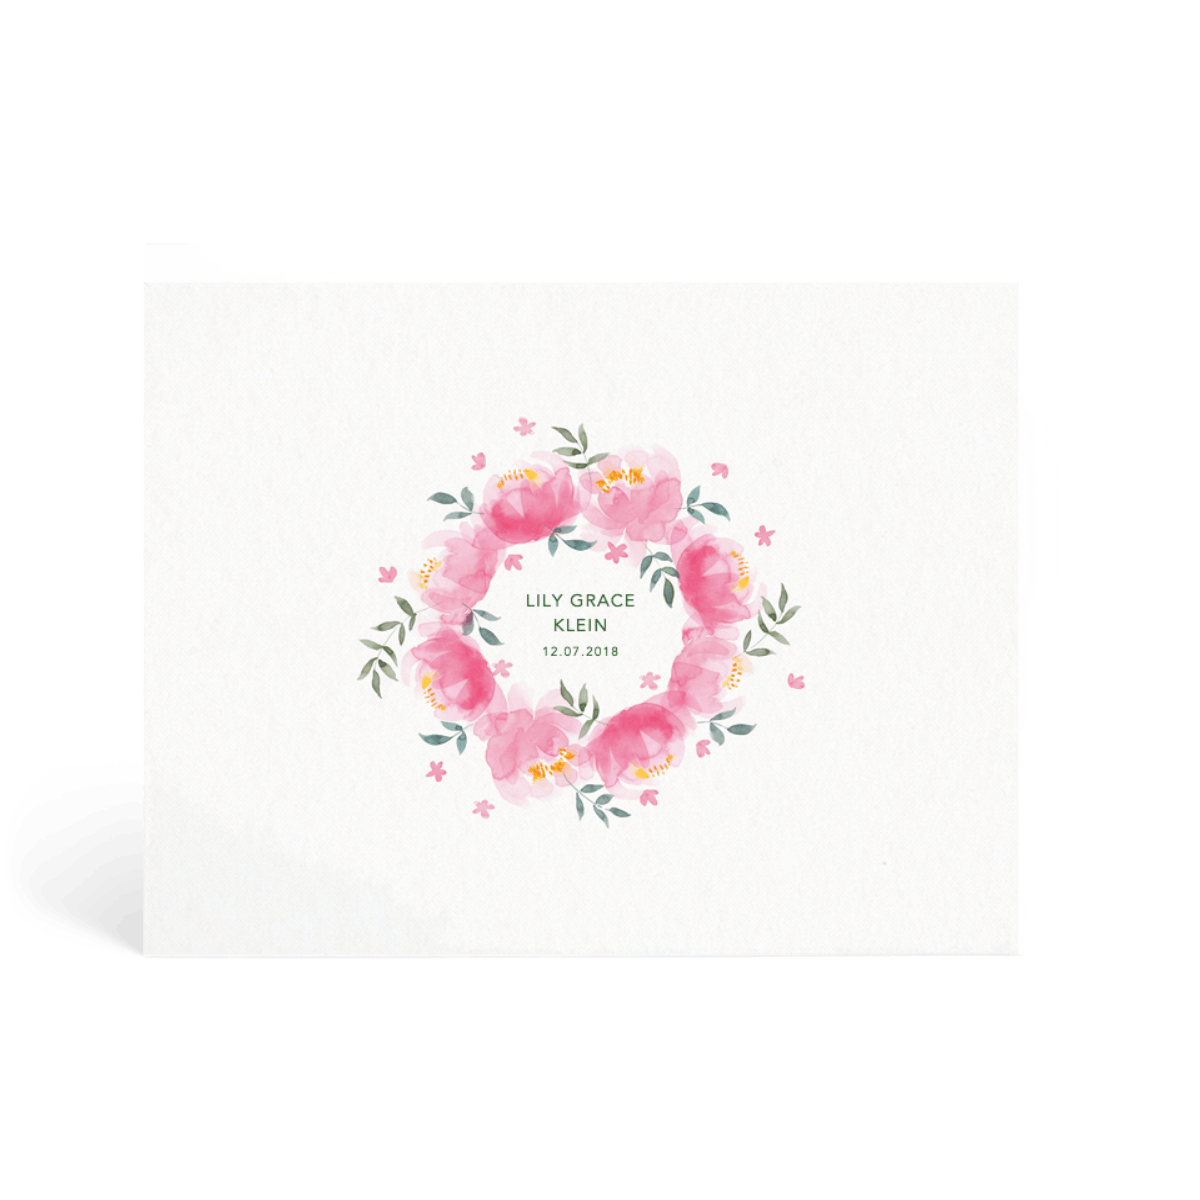 Https%3a%2f%2fwww.papier.com%2fproduct image%2f43777%2f28%2fpeonies 11081 front 1535729127.png?ixlib=rb 1.1